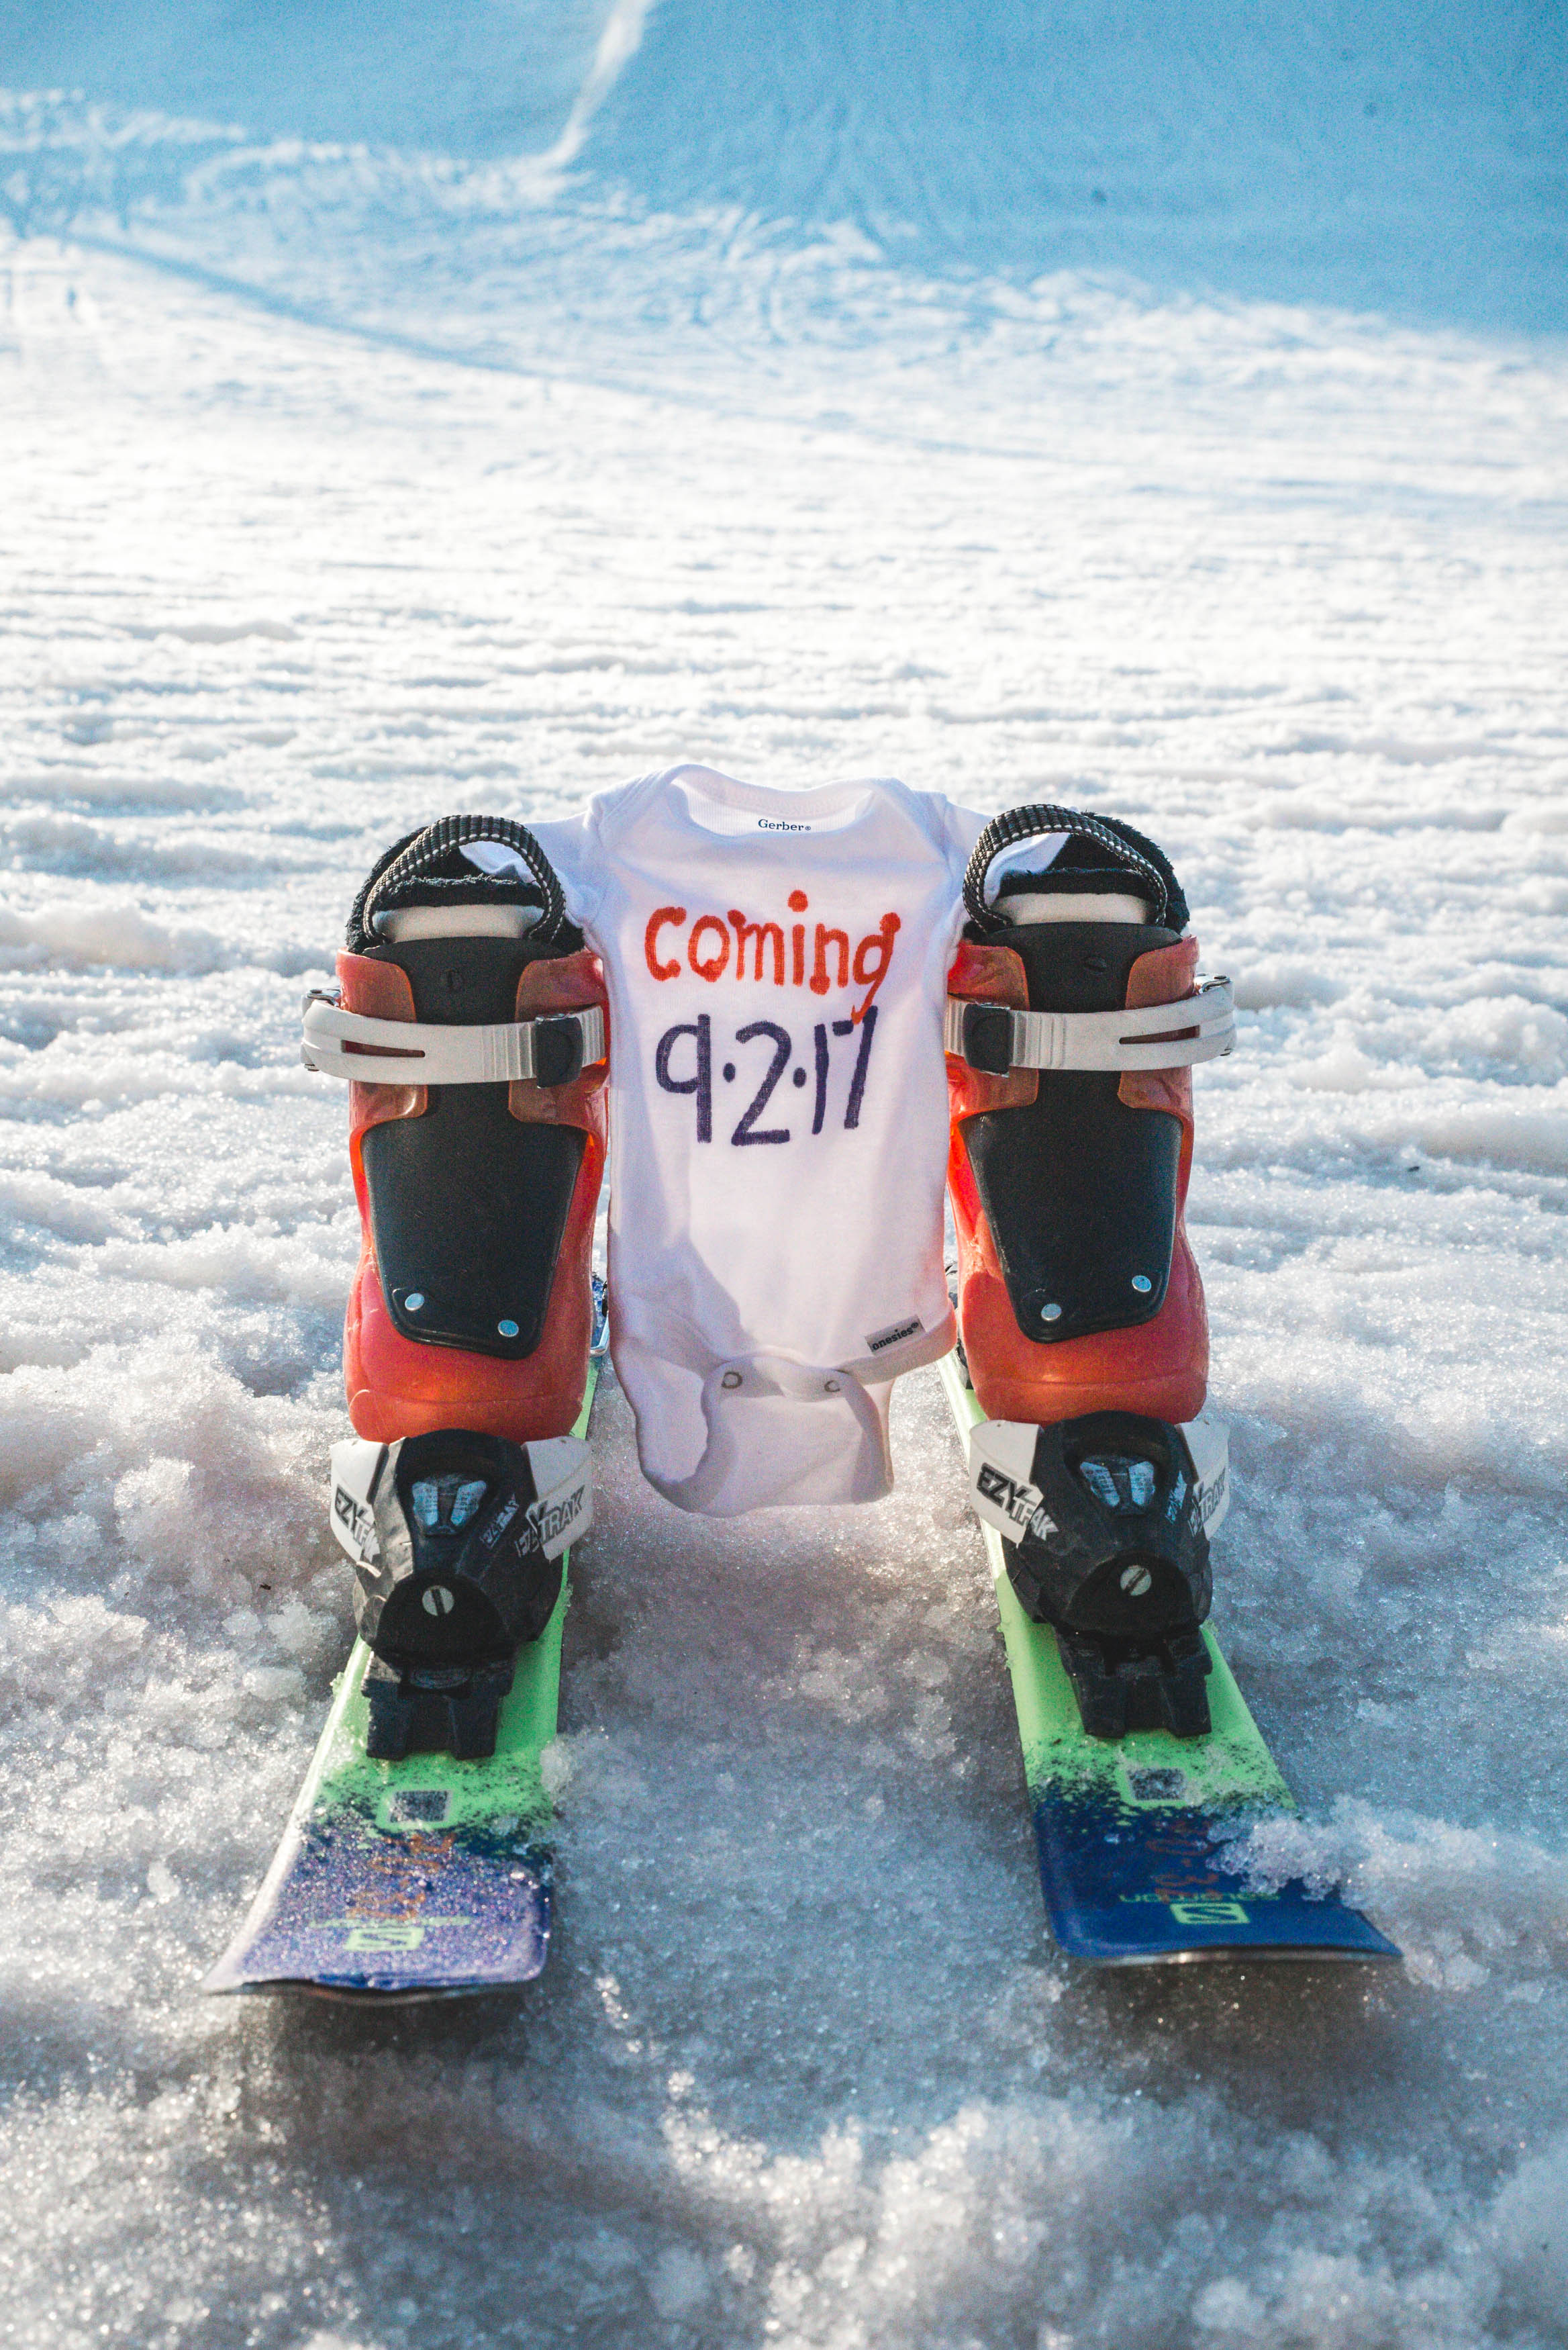 onesie pregnancy announcement skis